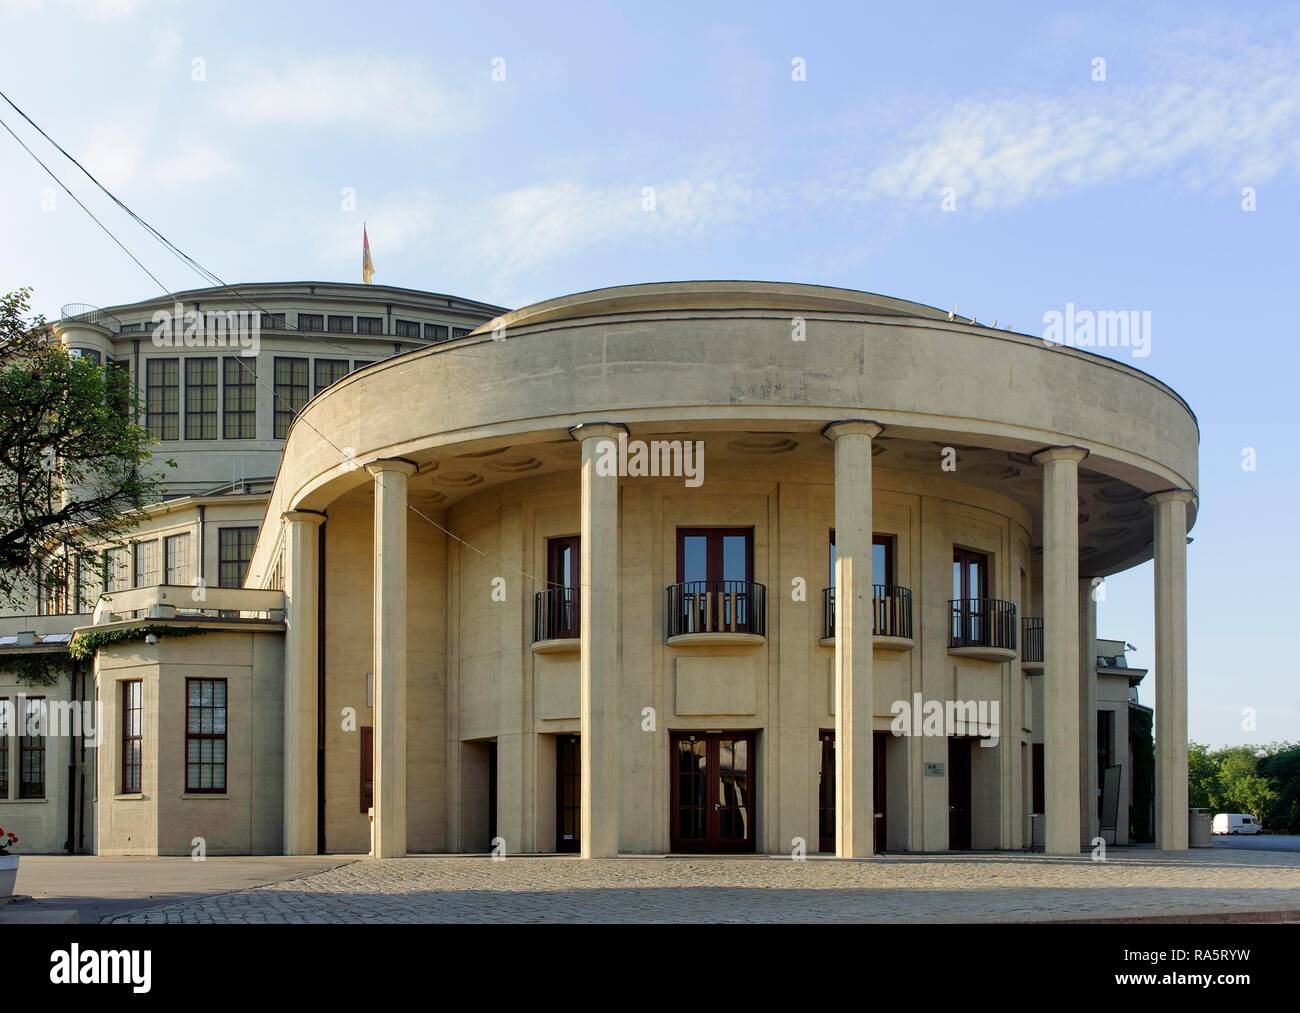 Centennial Hall, Hala Stulecia, built in 1913 by Max Berg, UNESCO World Heritage Site, Wroclaw, Lower Silesia Province, Poland Stock Photo